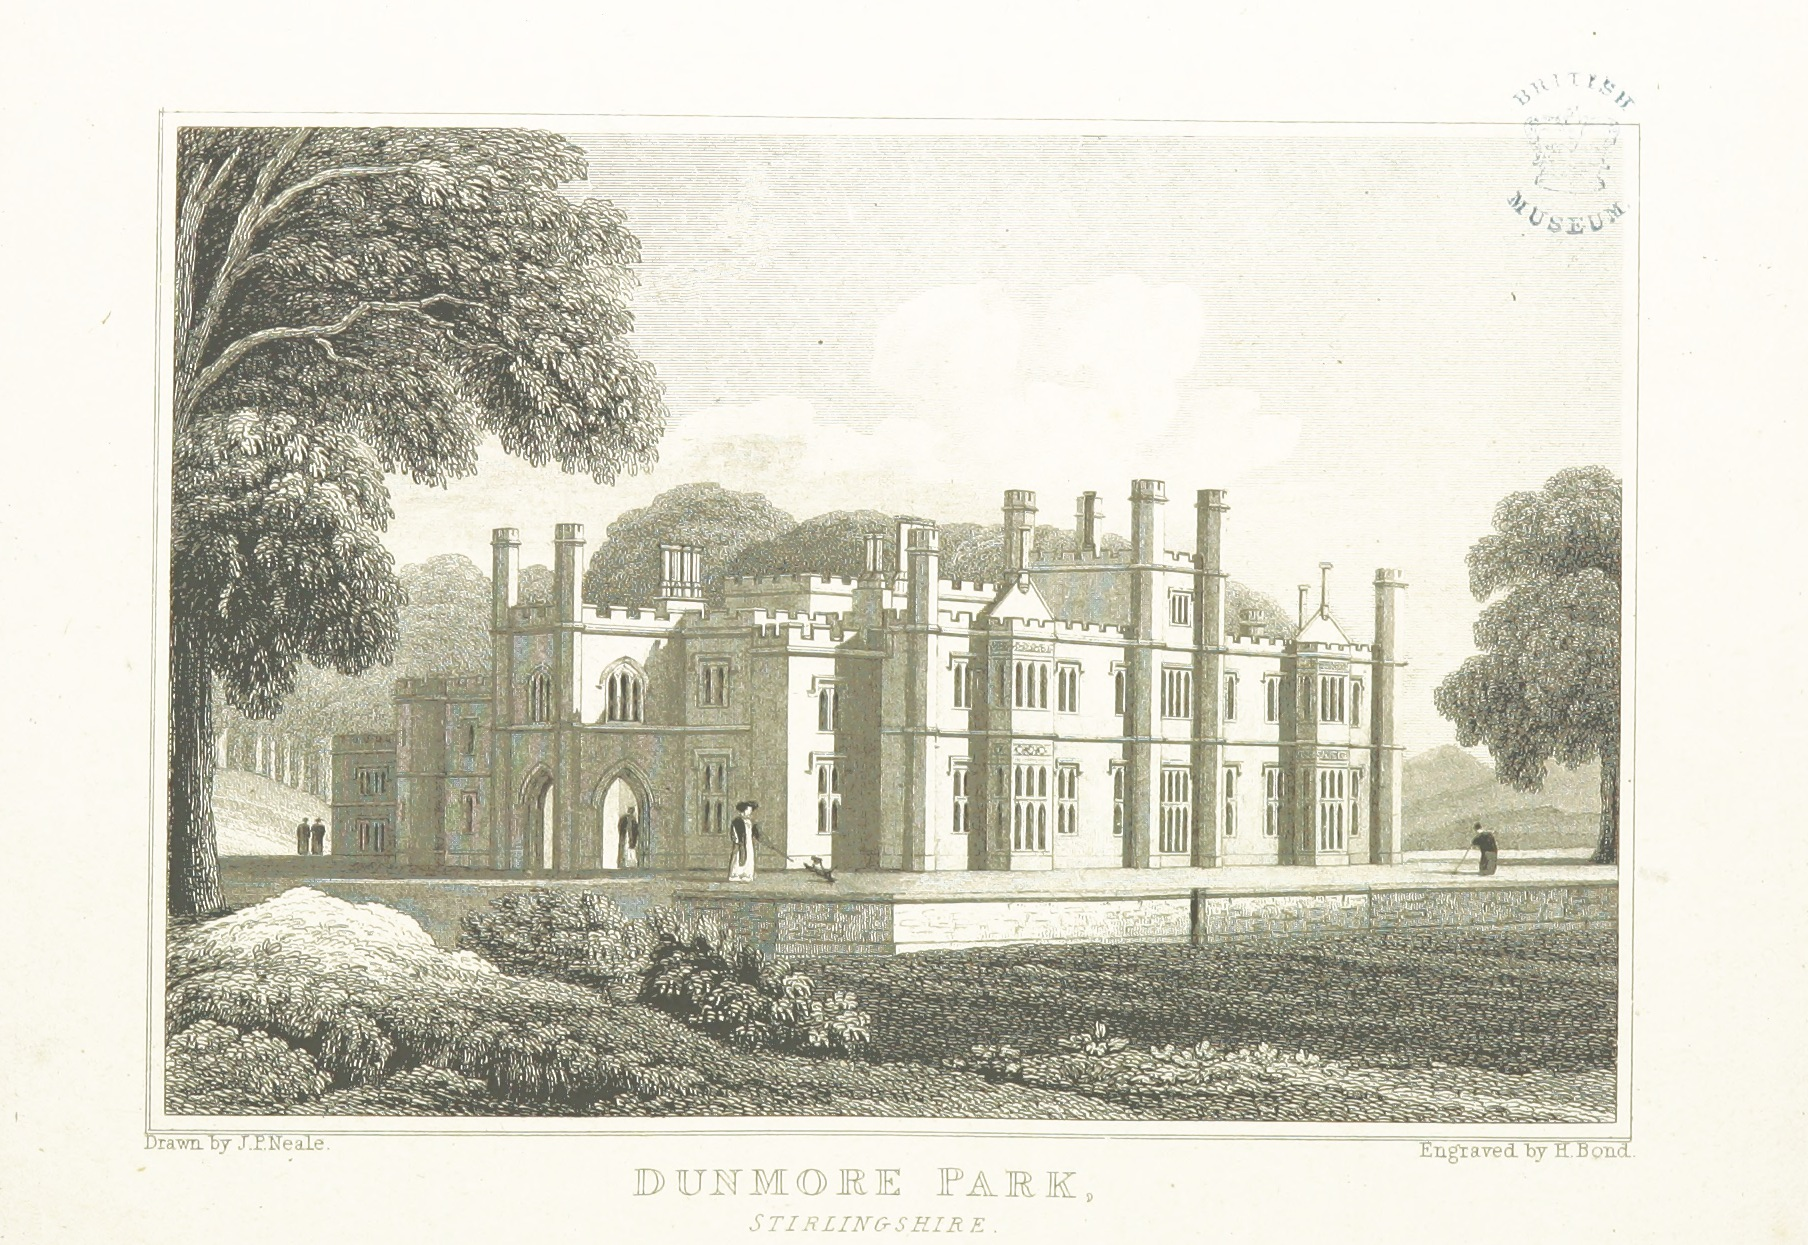 https://upload.wikimedia.org/wikipedia/commons/a/aa/Neale%281826%29_p3.242_-_Dunmore_Park%2C_Stirlingshire.jpg